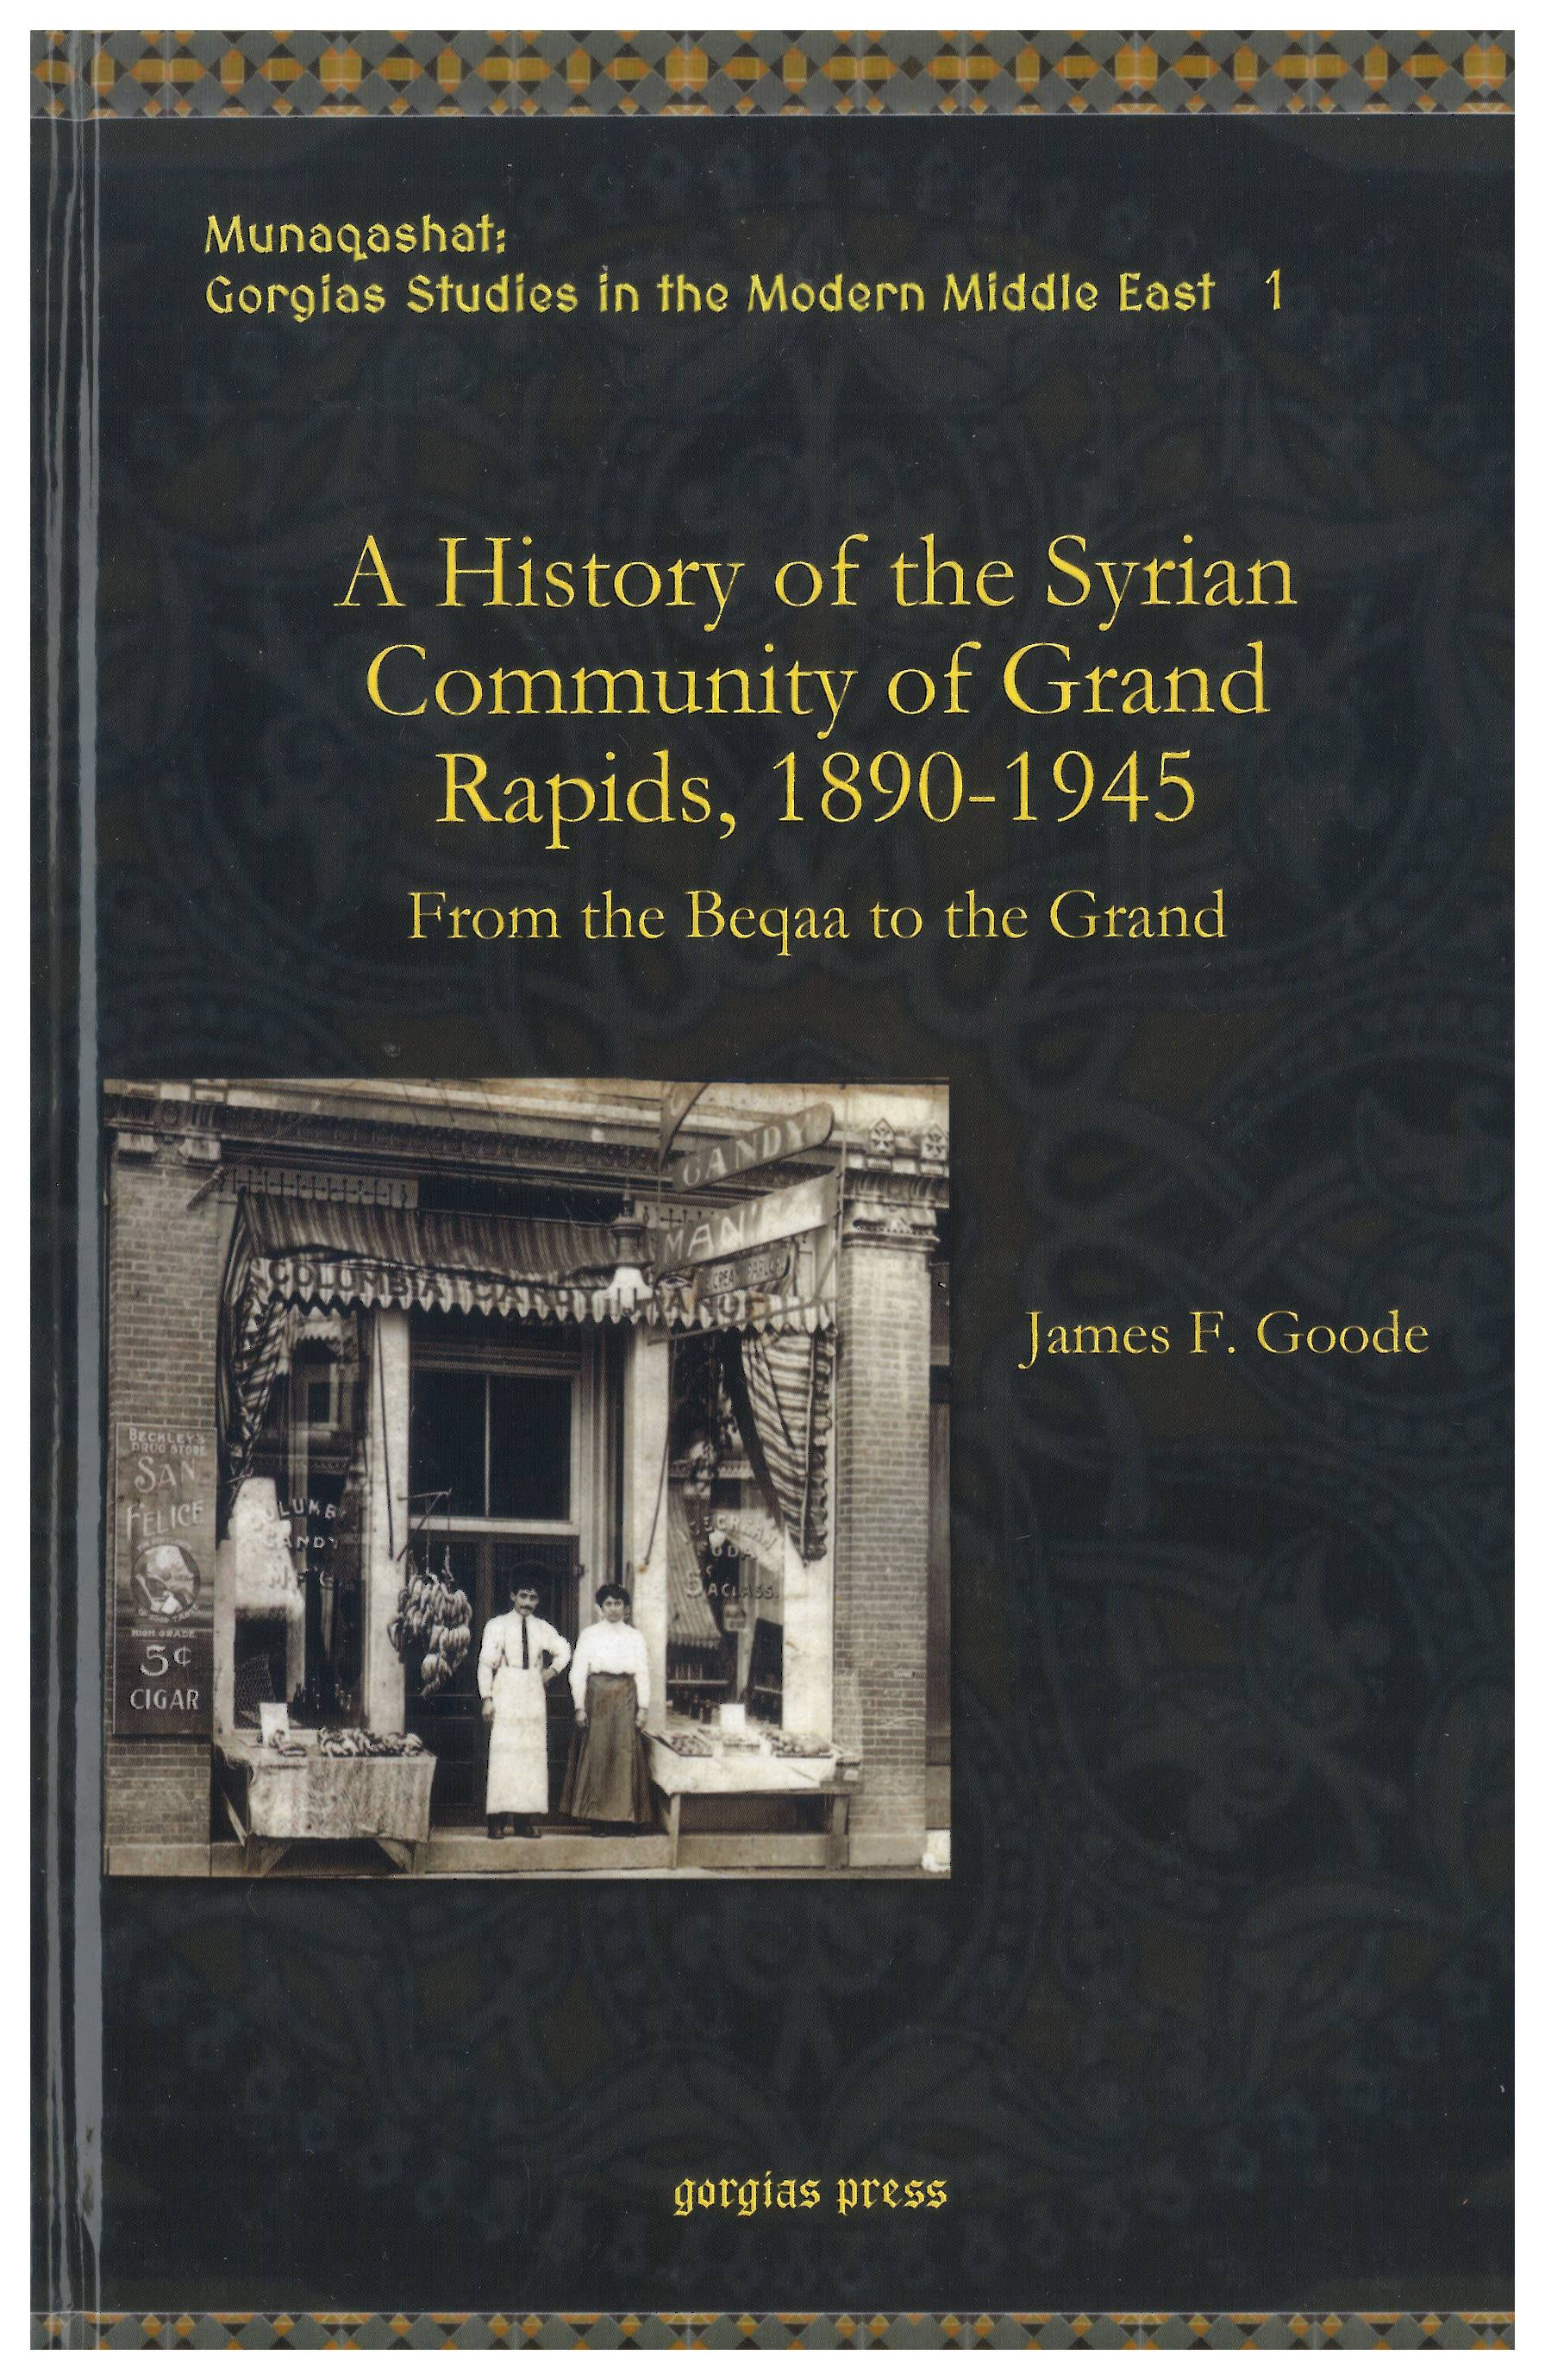 A History of the Syrian Commuity of Grand Rapids